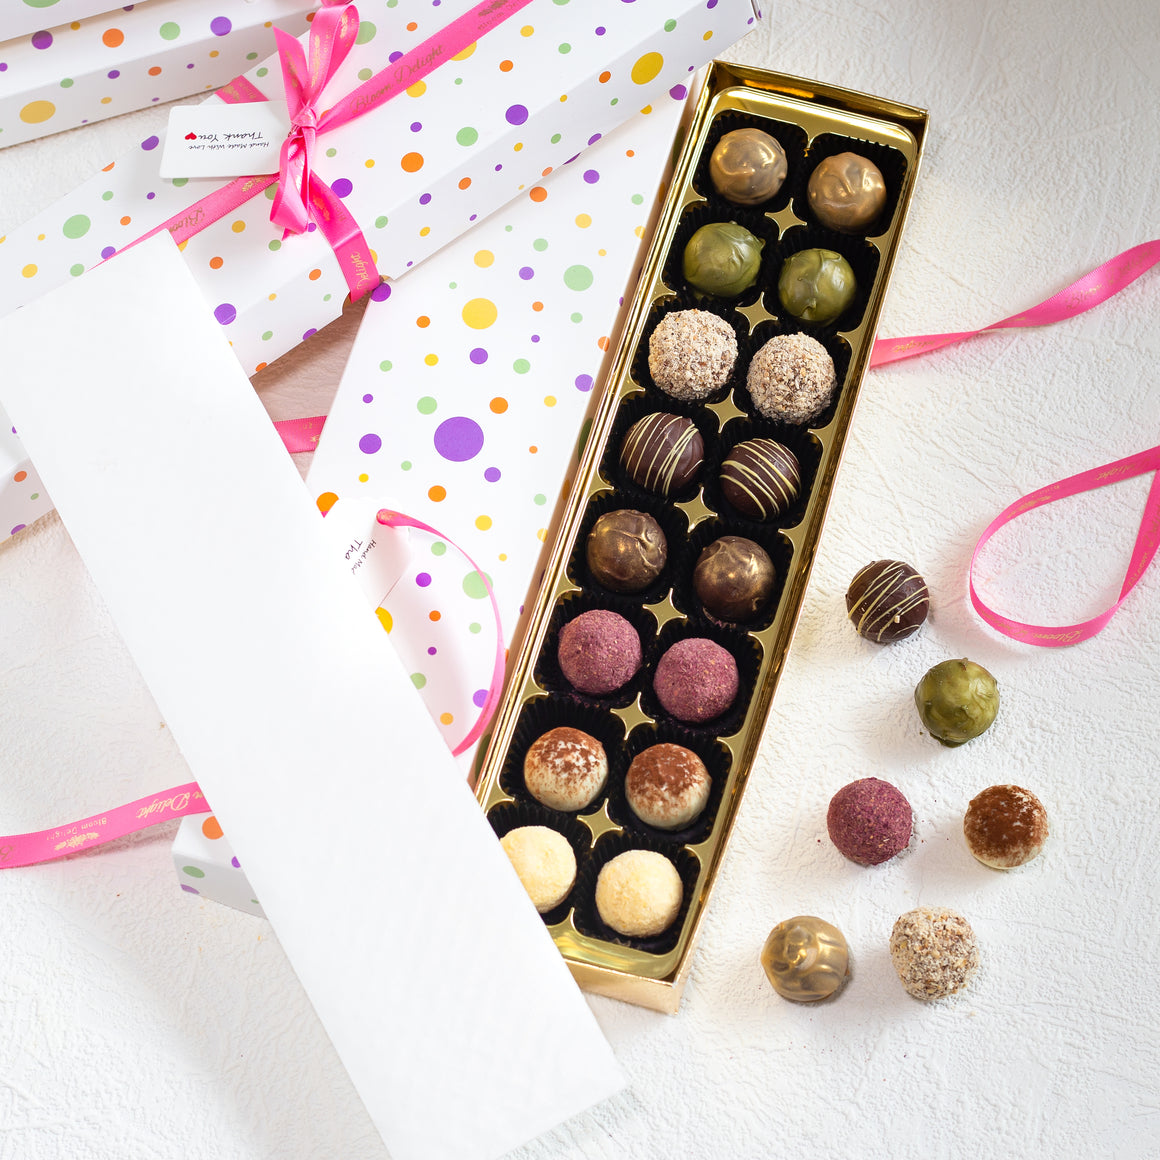 Celebration luxury chocolate truffles.